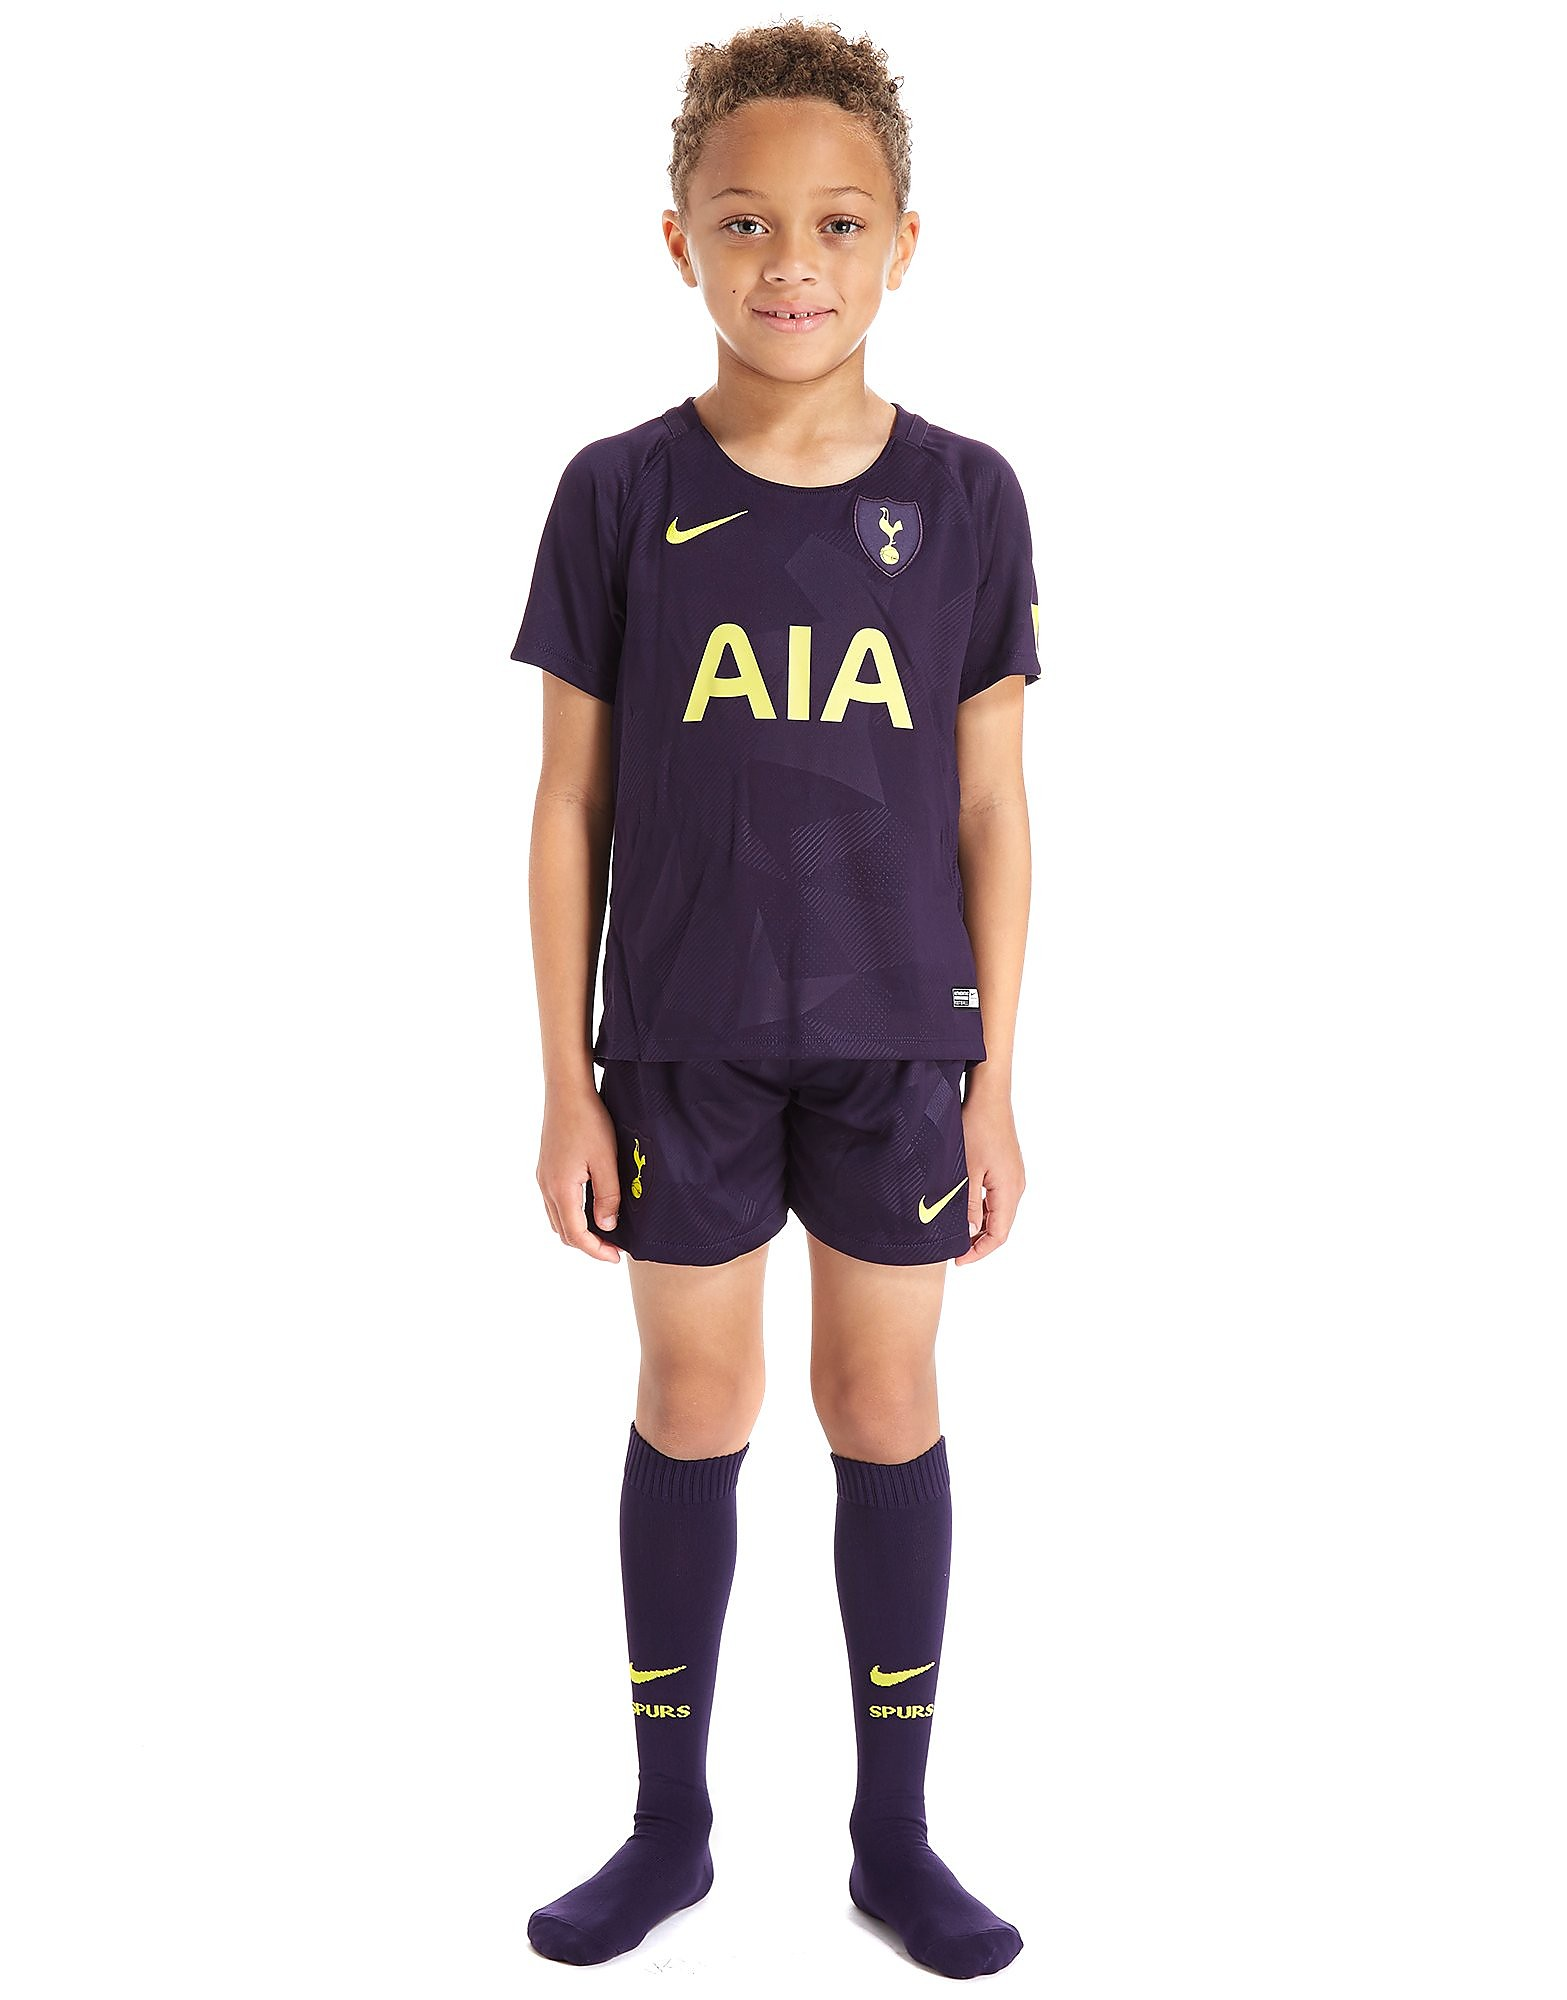 Nike Tottenham Hotspur 2017/18 Third Kit Children